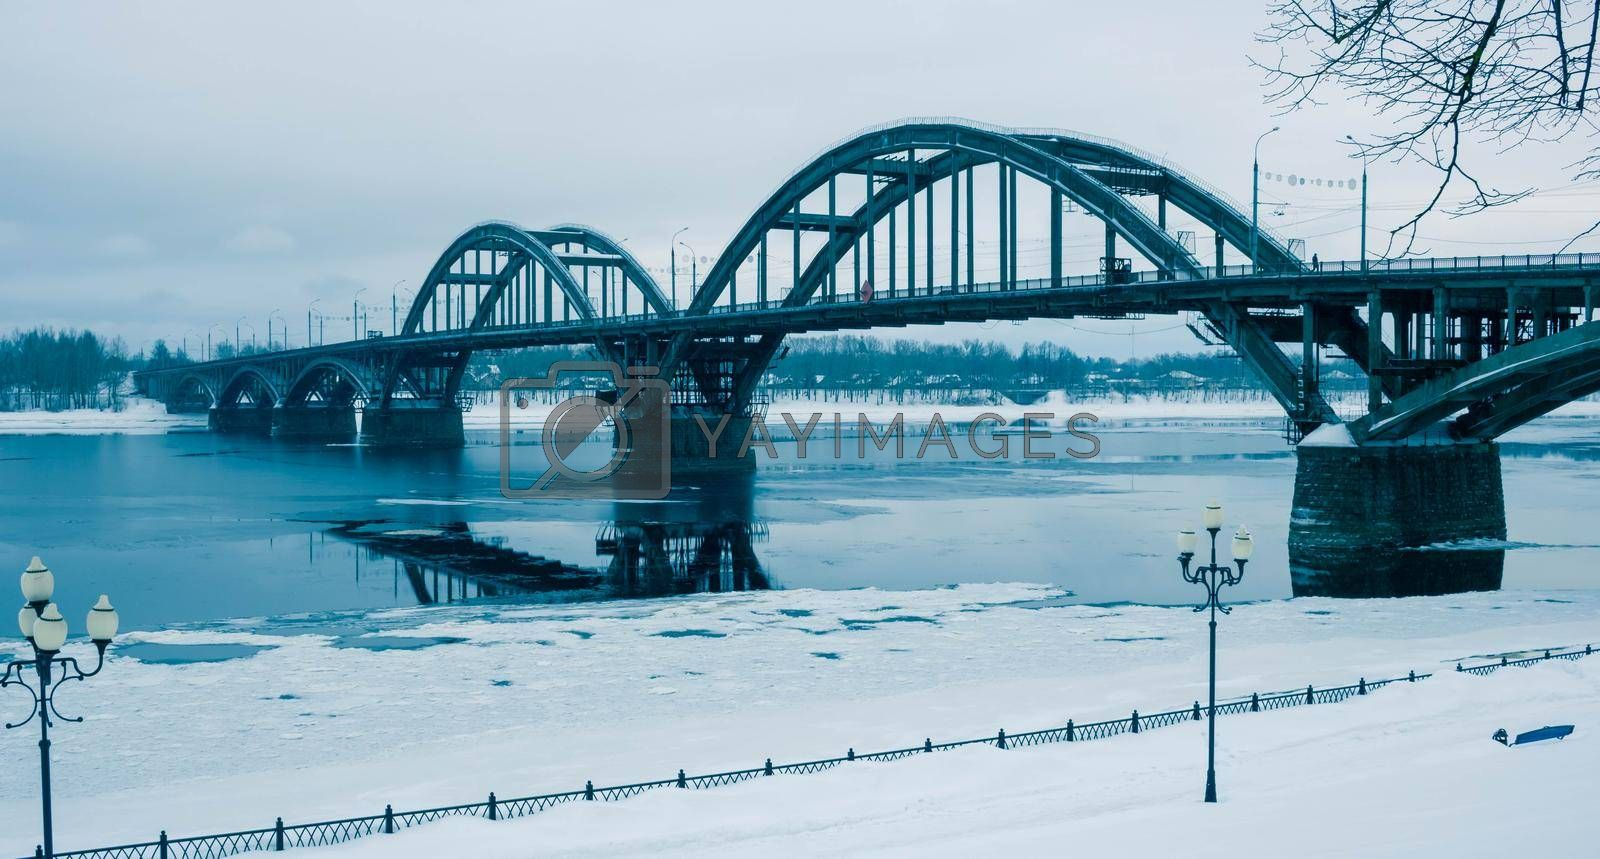 Ice floats on the Volga River.Automobile bridge in the city of Rybinsk, Russia.